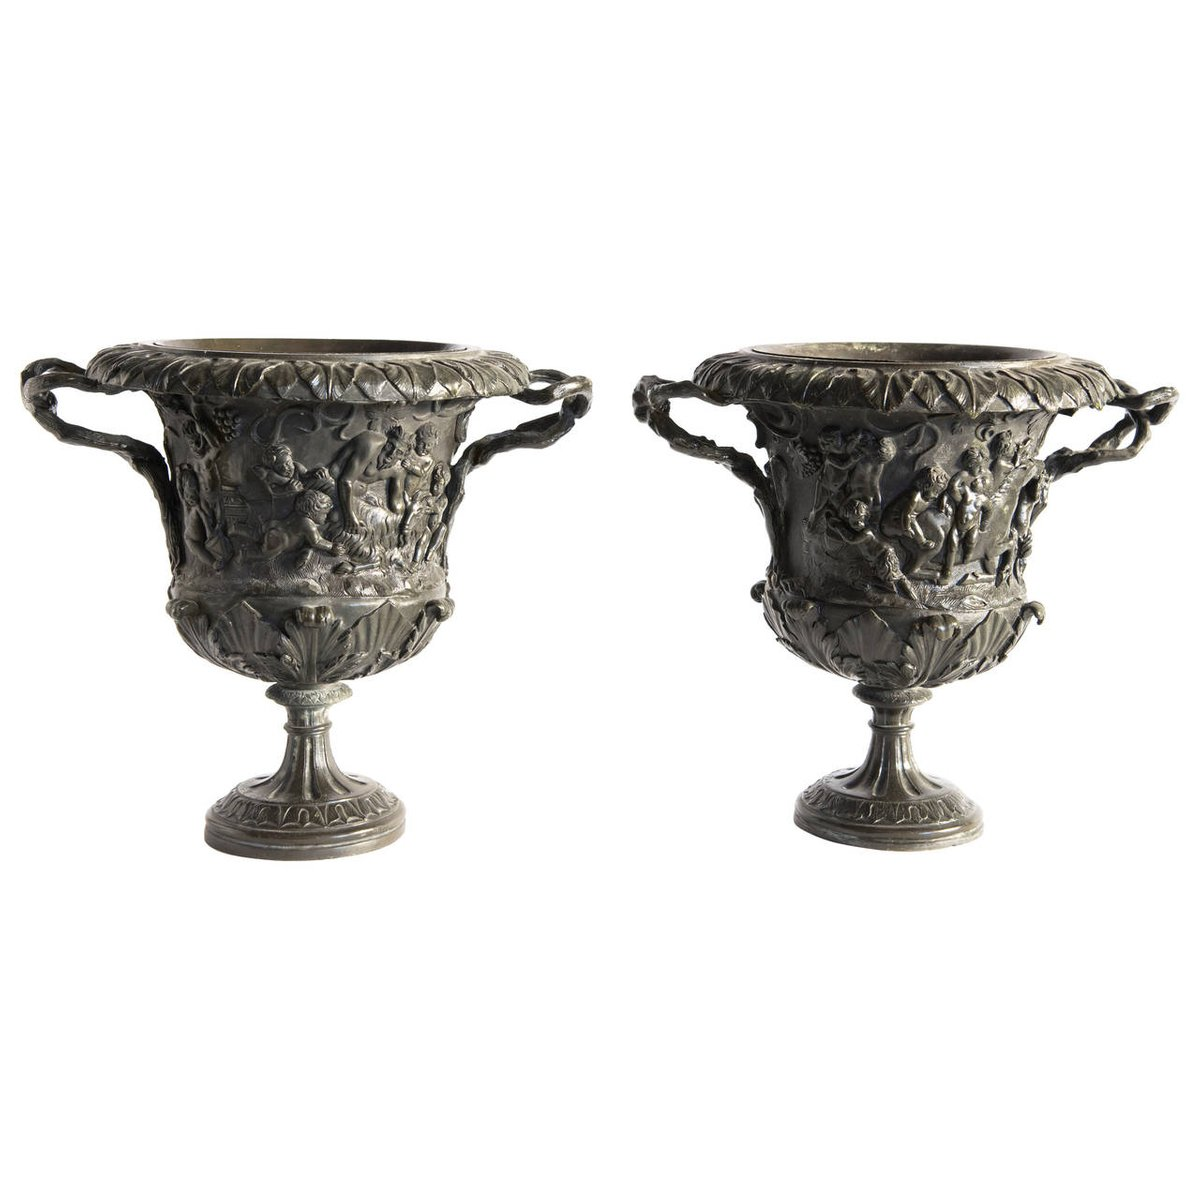 italian carved bronze grand tour vases by m amodio 1880s set of 2 for sale at pamono. Black Bedroom Furniture Sets. Home Design Ideas